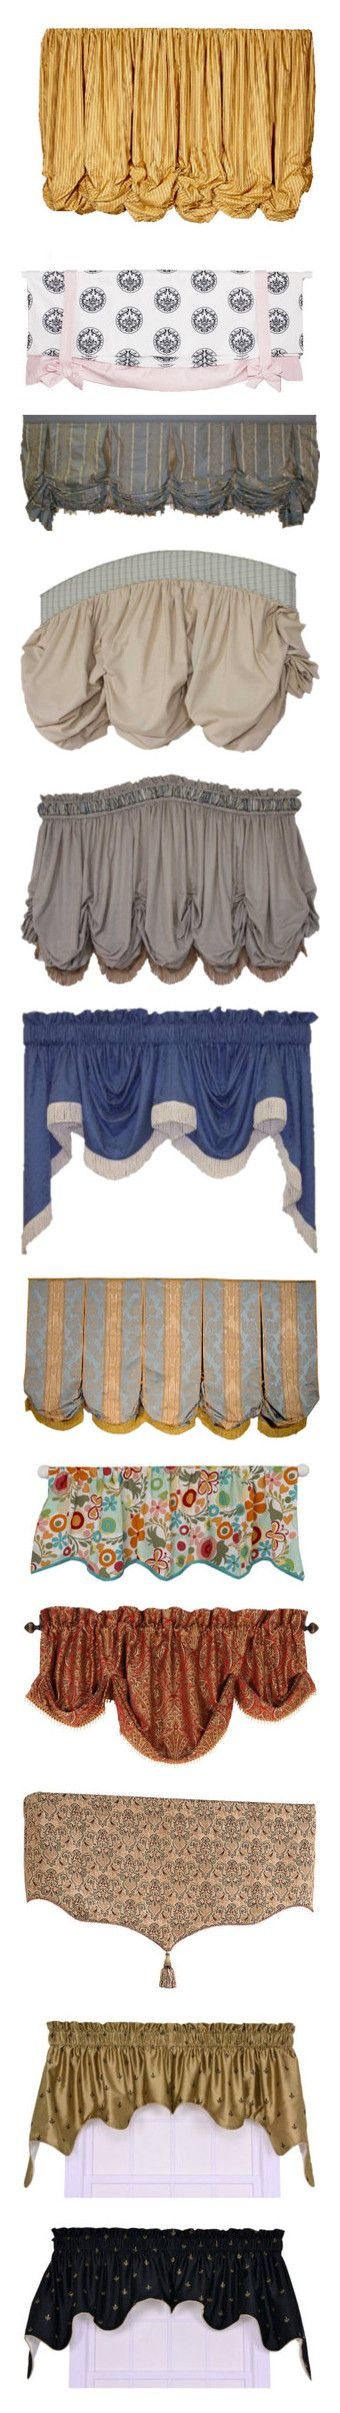 """""""Valances - 1"""" by lynnspinterest ❤ liked on Polyvore featuring home, home decor, window treatments, curtains, windows, drapes, valance, balloon window treatments, balloon curtains and window drapery"""